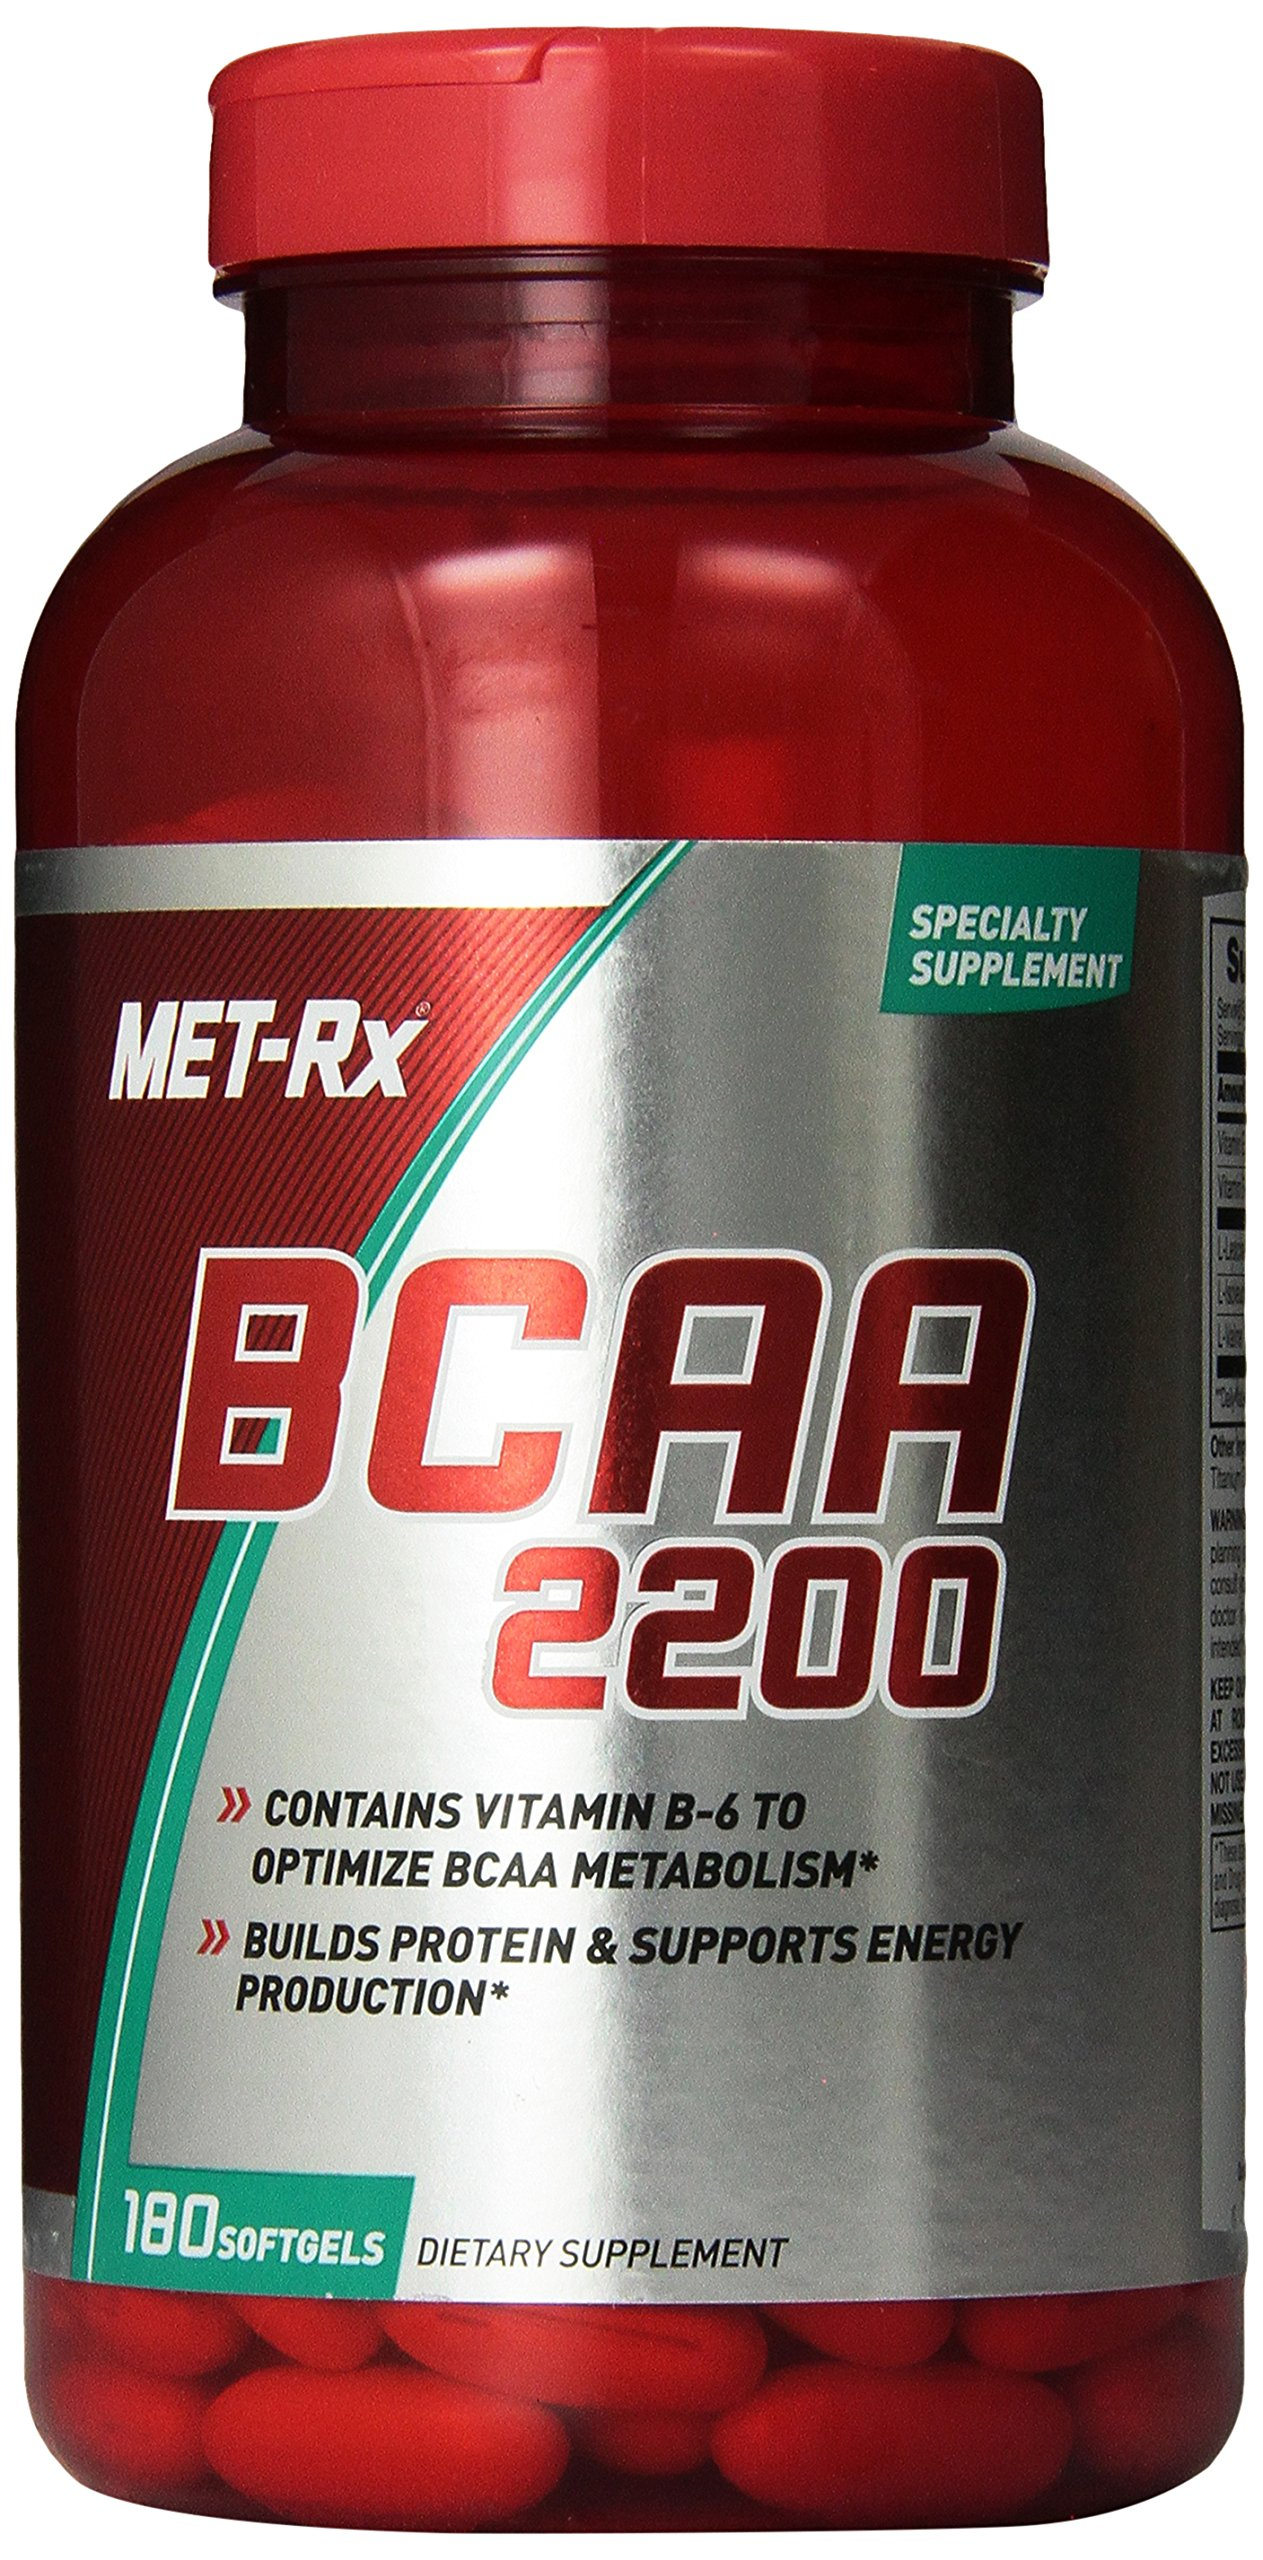 MET-Rx BCAA 2200 BCAA Supplement Dietary Supplement to Build Protein and Support Energy Production 1-180 Softgel Bottle